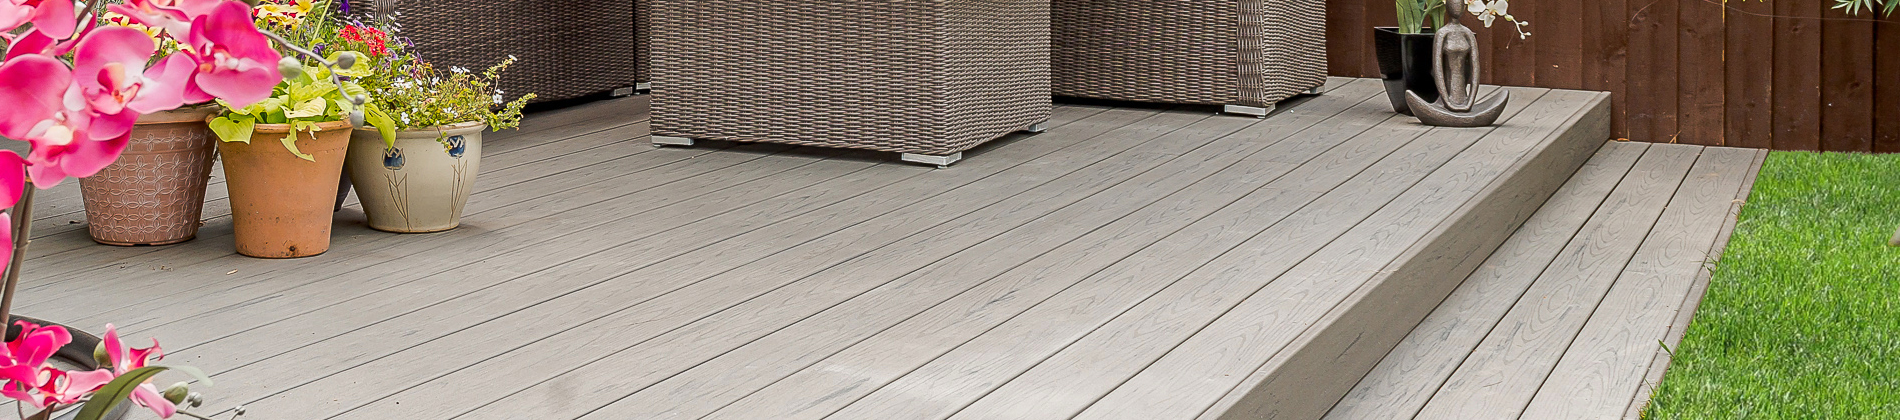 Silver Maple Composite Decking From 163 65 54 Per M2